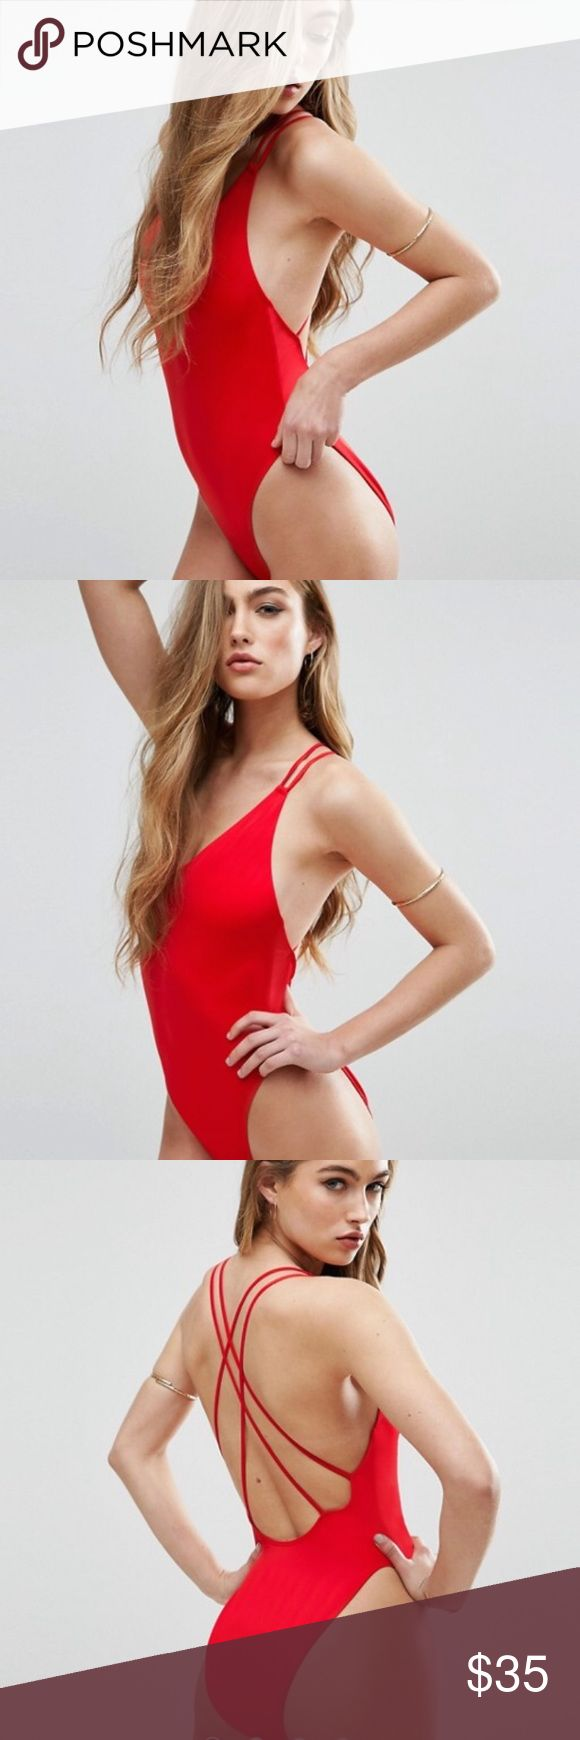 ASOS High cut cross back red swimsuit Baywatch NWT FROM ASOS Asos Swim One Pieces